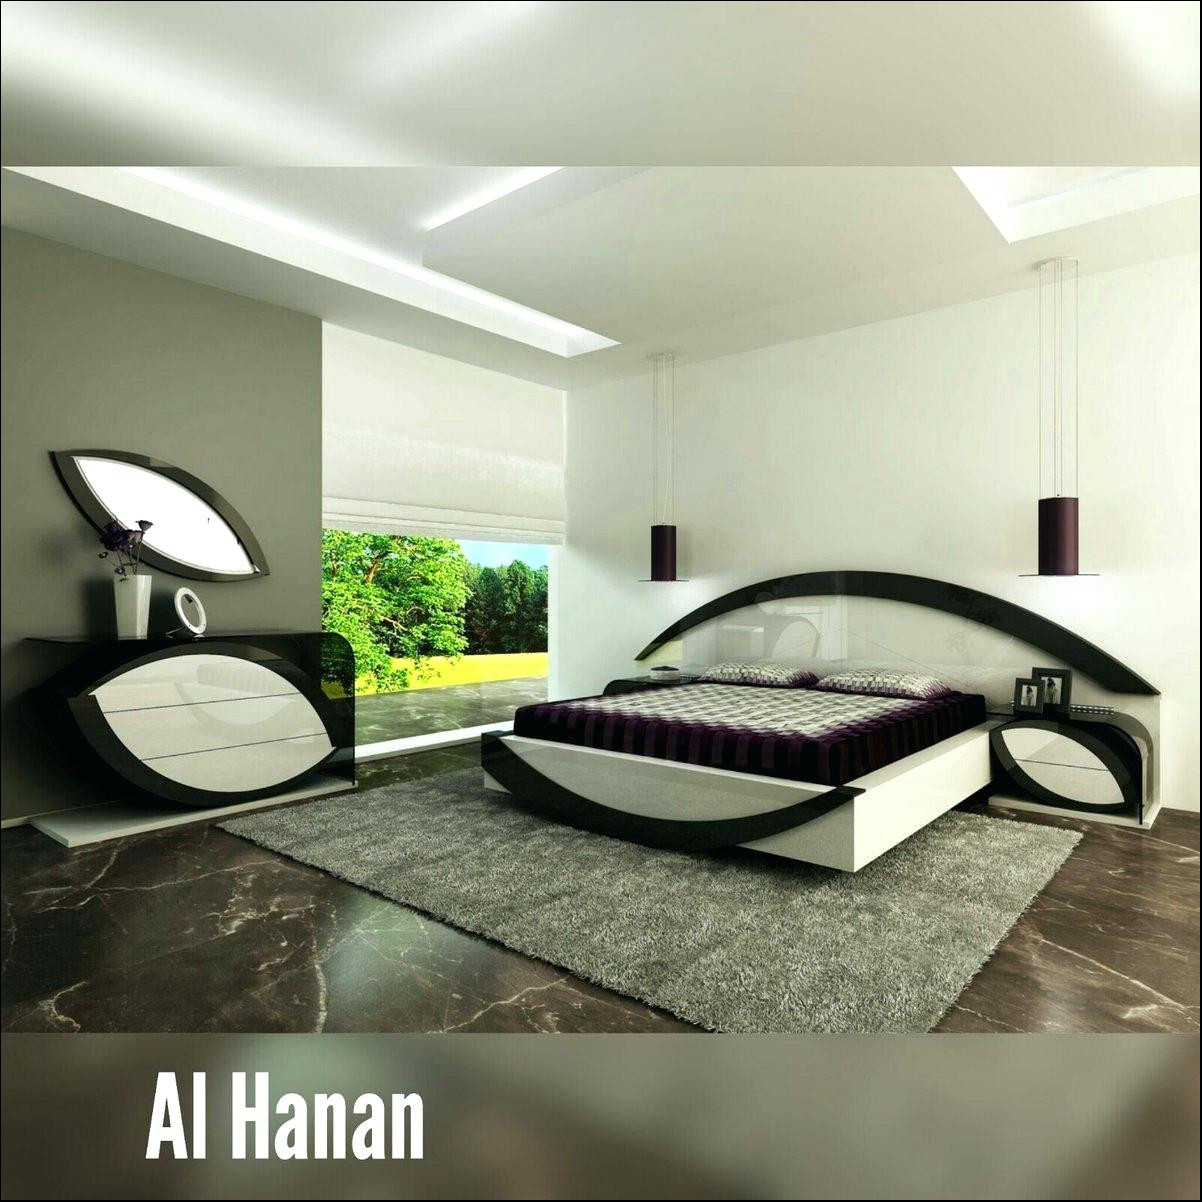 Best Ultra Modern Bed Design Modern Bedroom Design Unique Ultra with 10 Clever Ways How to Build Ultra Modern Bedrooms